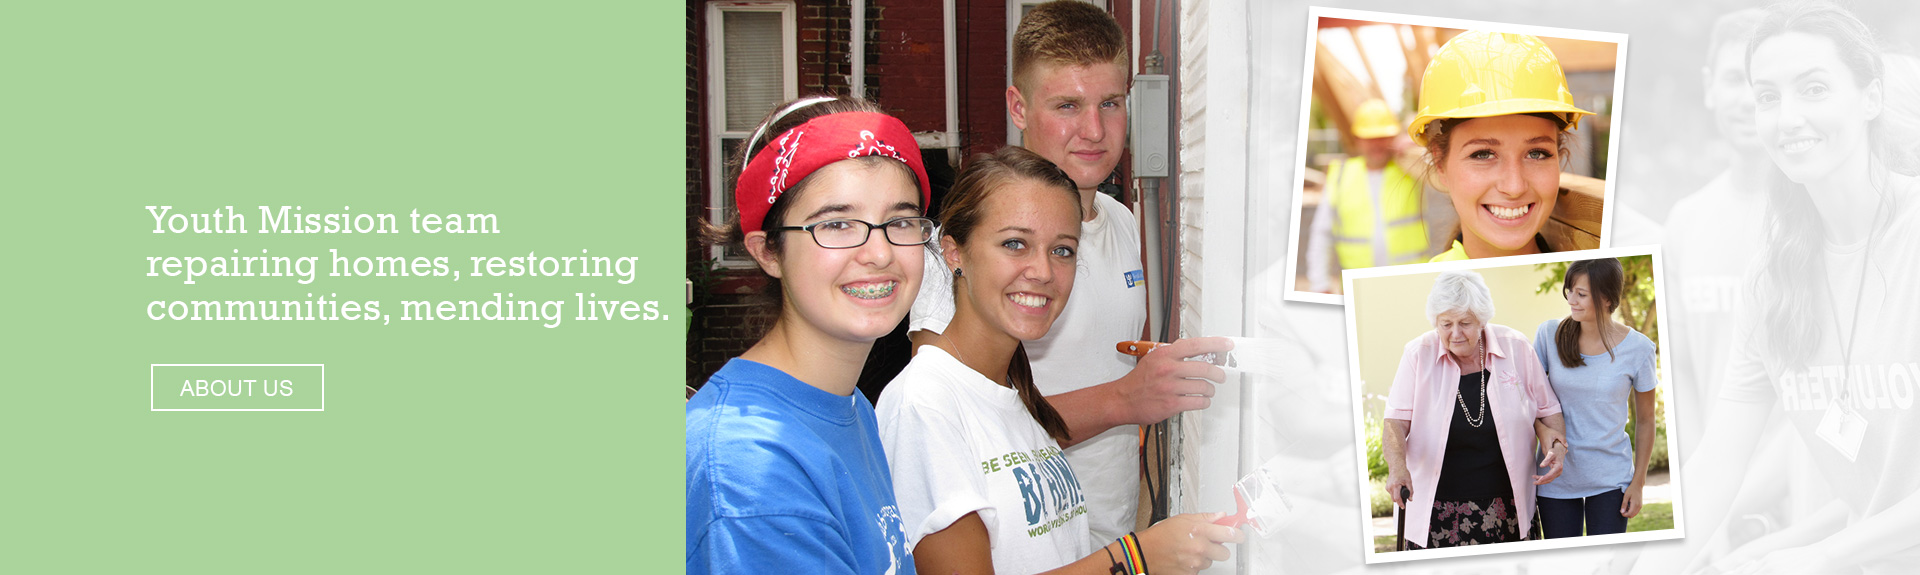 Youth Mission team repairing homes, restoring communities, mending lives.